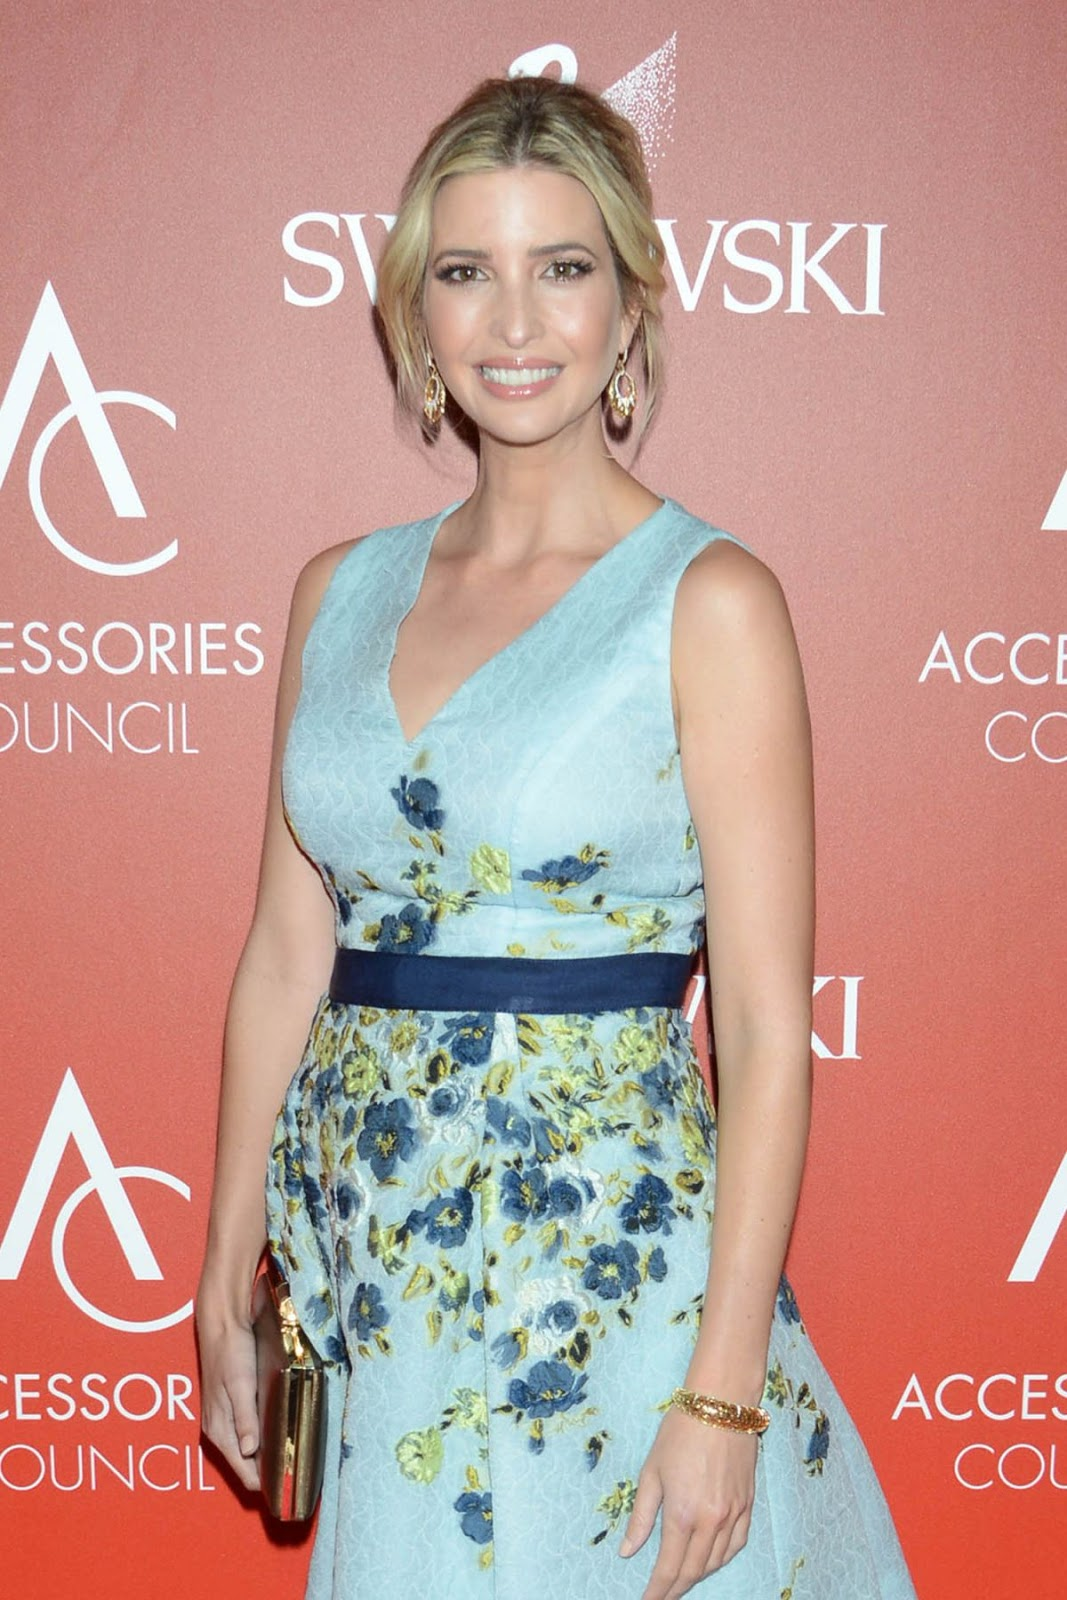 Ivanka Trump at 18th Annual Accessories Council ACE Awards in New York